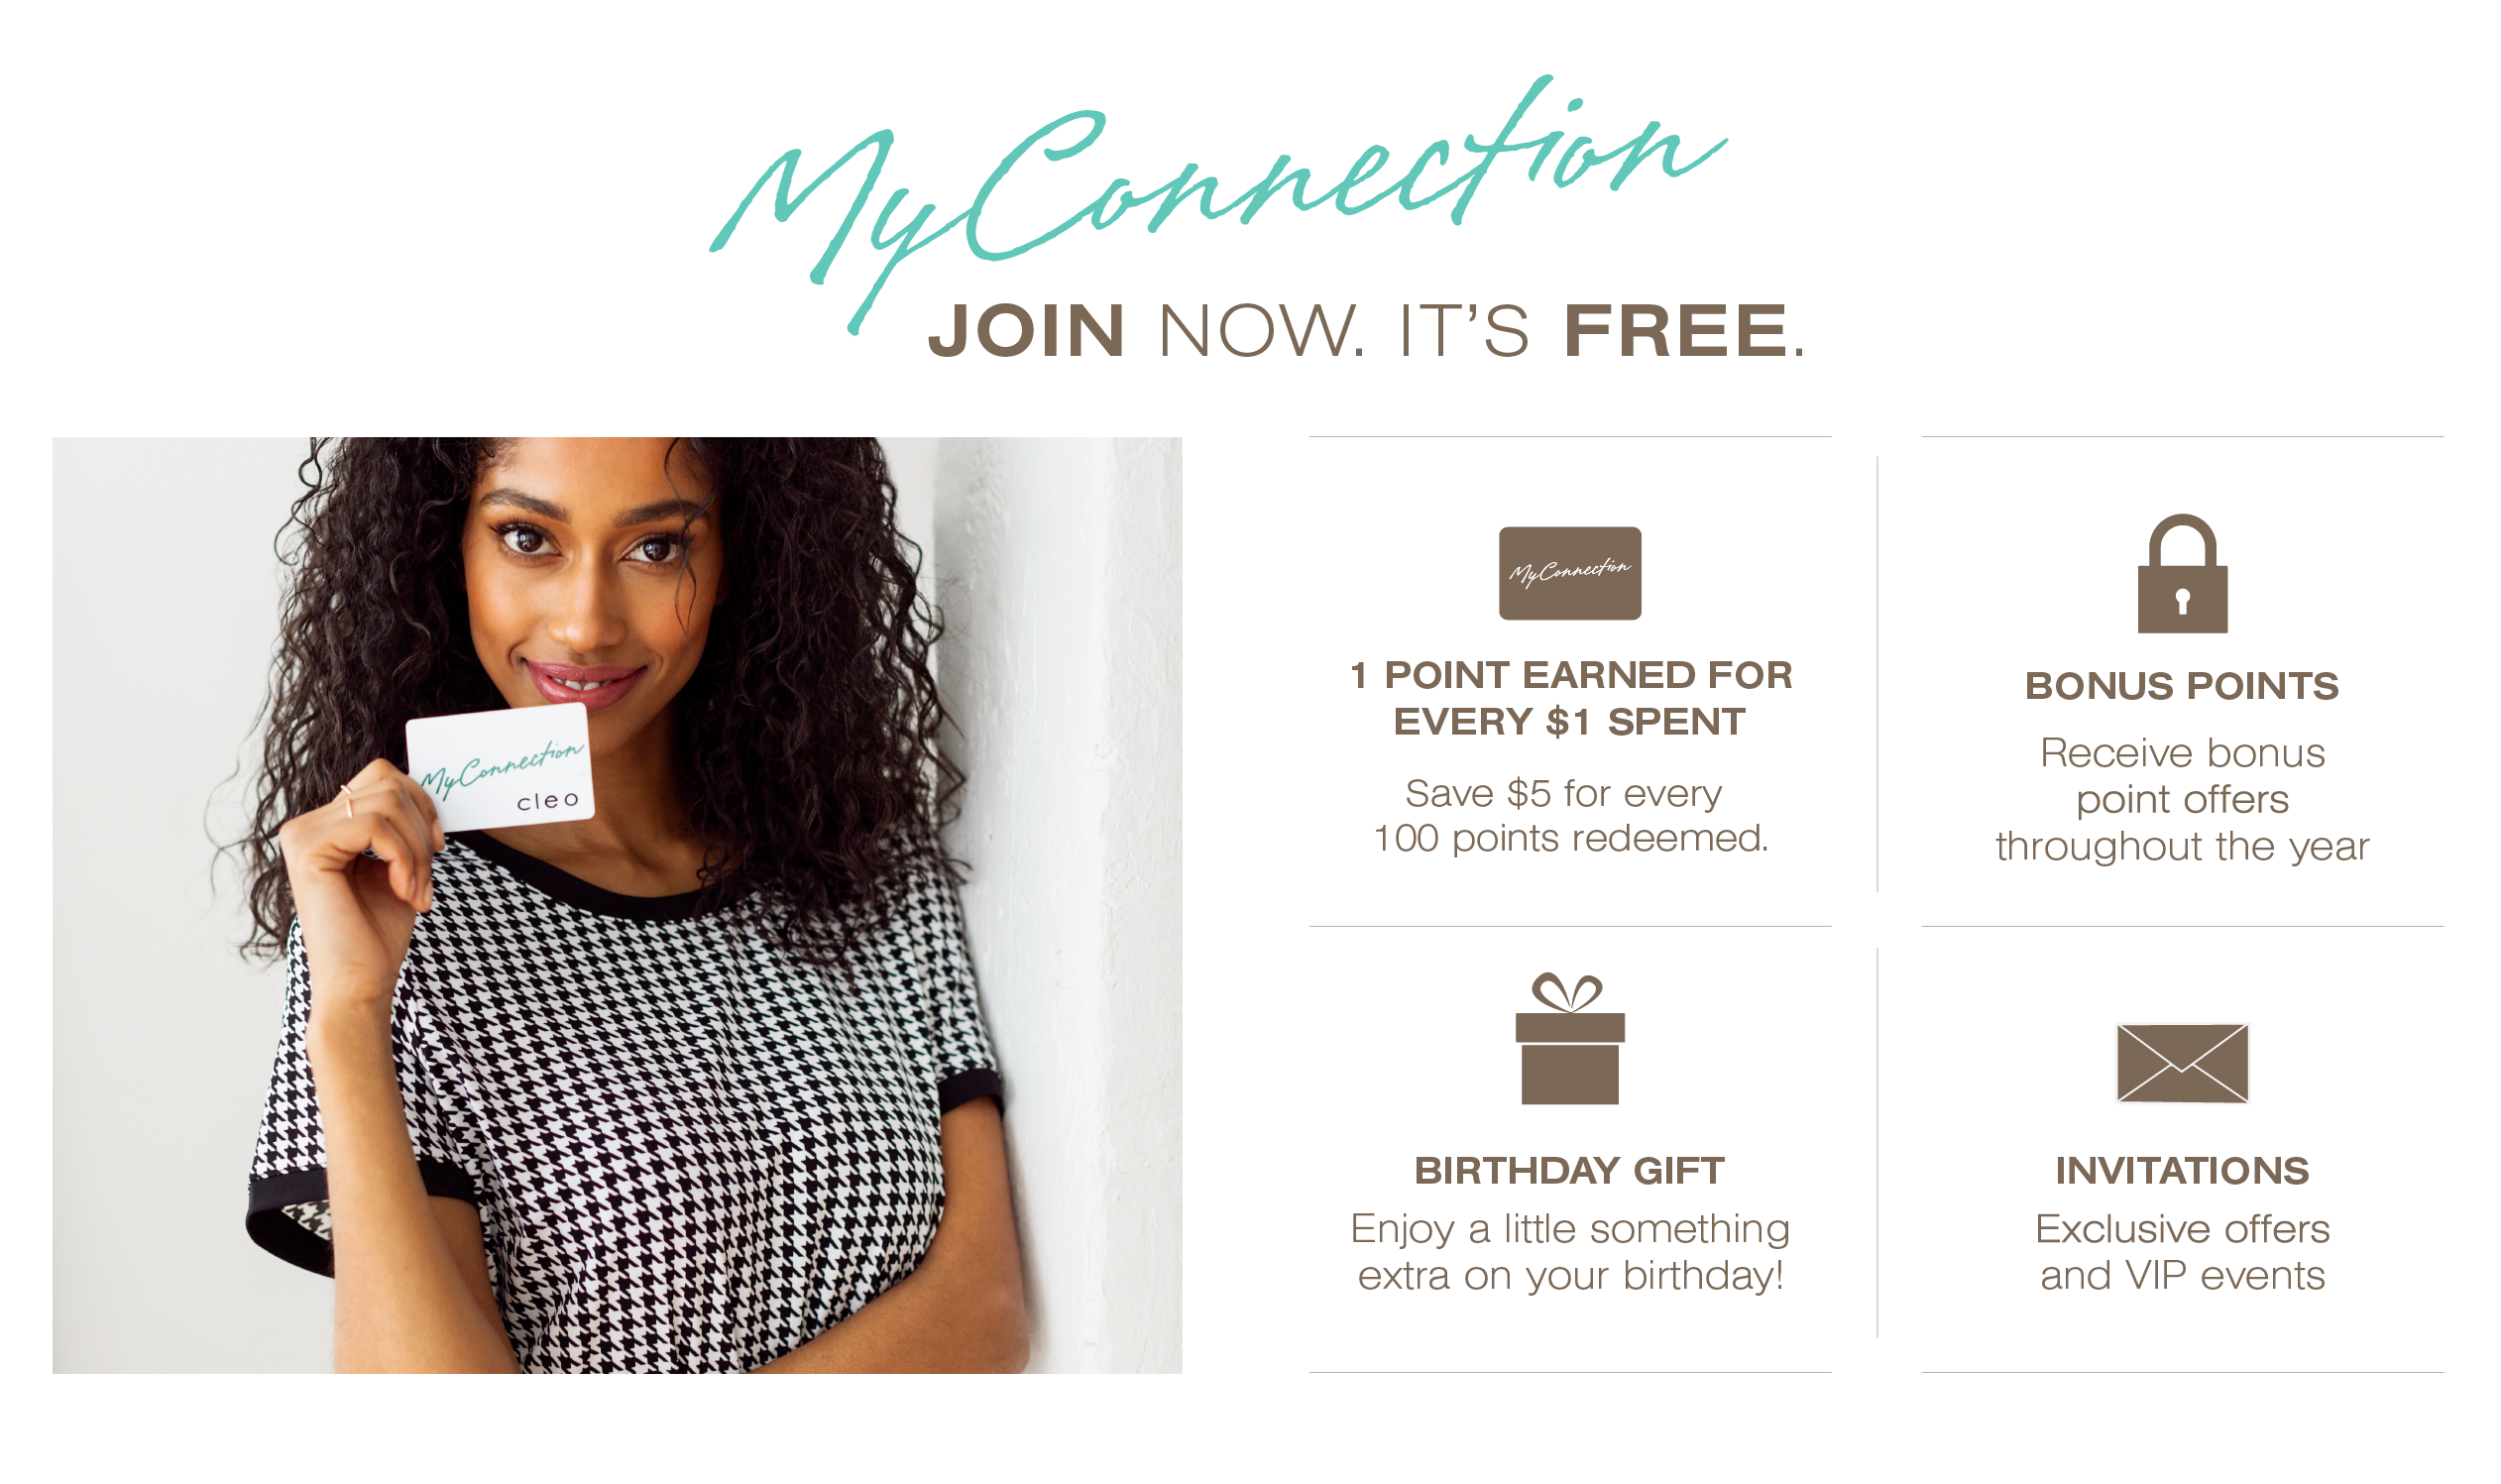 My Connection, join now. It's free. 1 point earned for every $1 spent. 500 points=$25 off. 1000 points = $50 off. 1500 points= $75 off. Bonus Points. Recieve bonus point offers throughout the year. Birthday Gift. Enjoy a little something extra on your birthday! Invitations. Exclusive offers and VIP events.